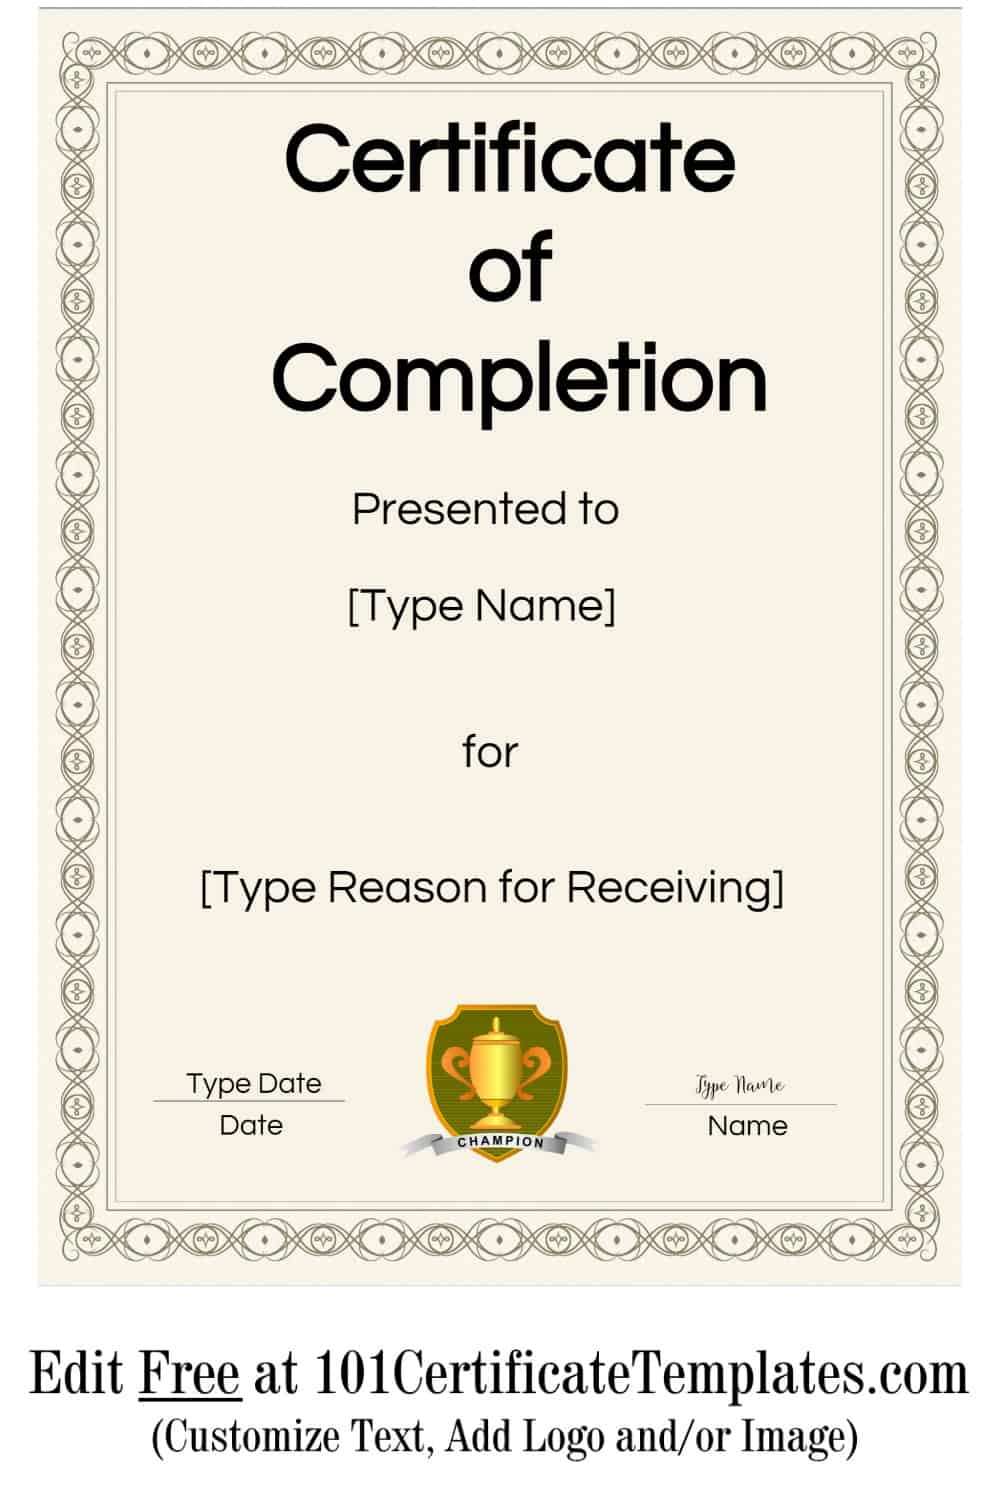 This is an image of Gorgeous Printable Certificate of Completion